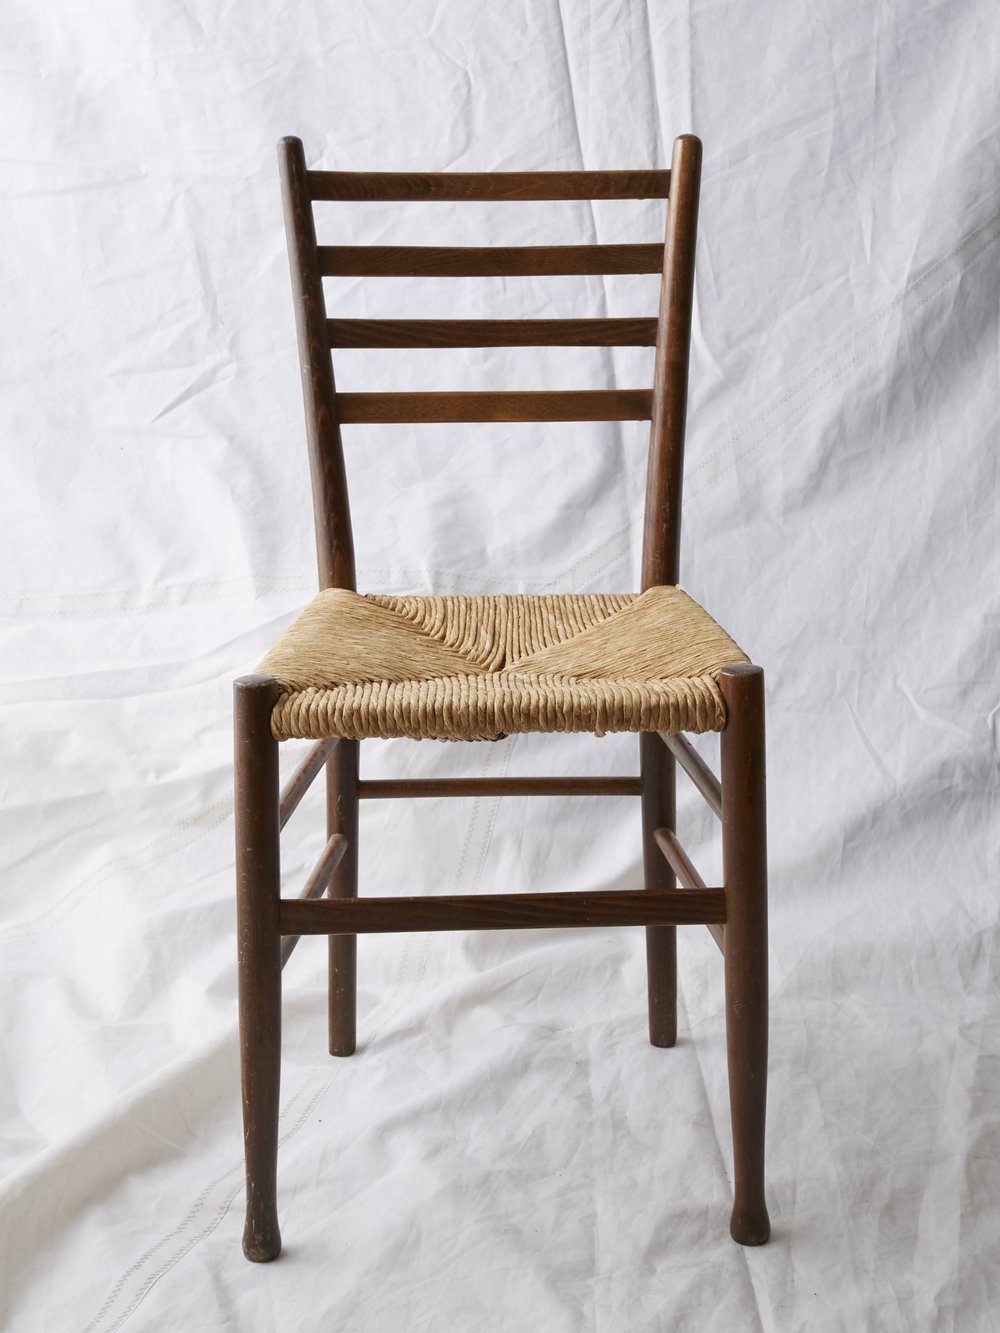 """CH040 Wood chair with wicker seat 33"""" H x 16"""" W x 17"""" D $75/week"""